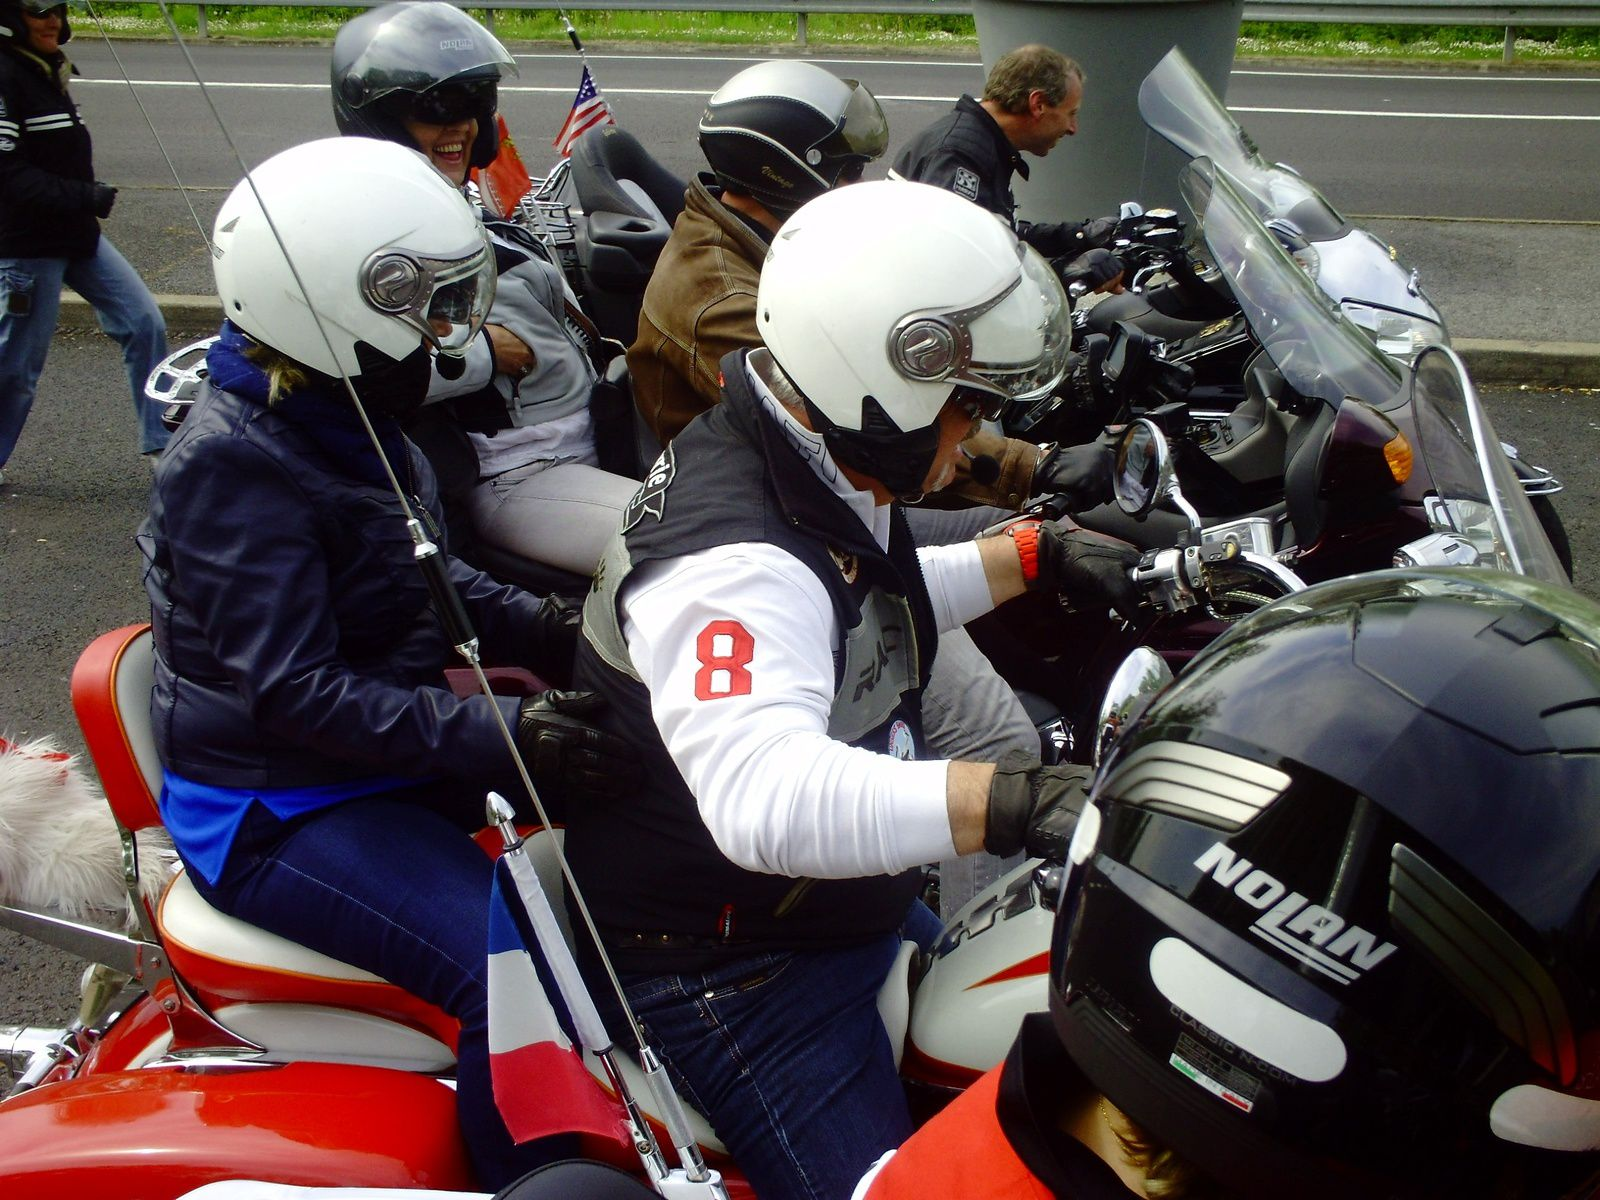 Goldwing - Week-end de 4 jours en Champagne en moto 3/4